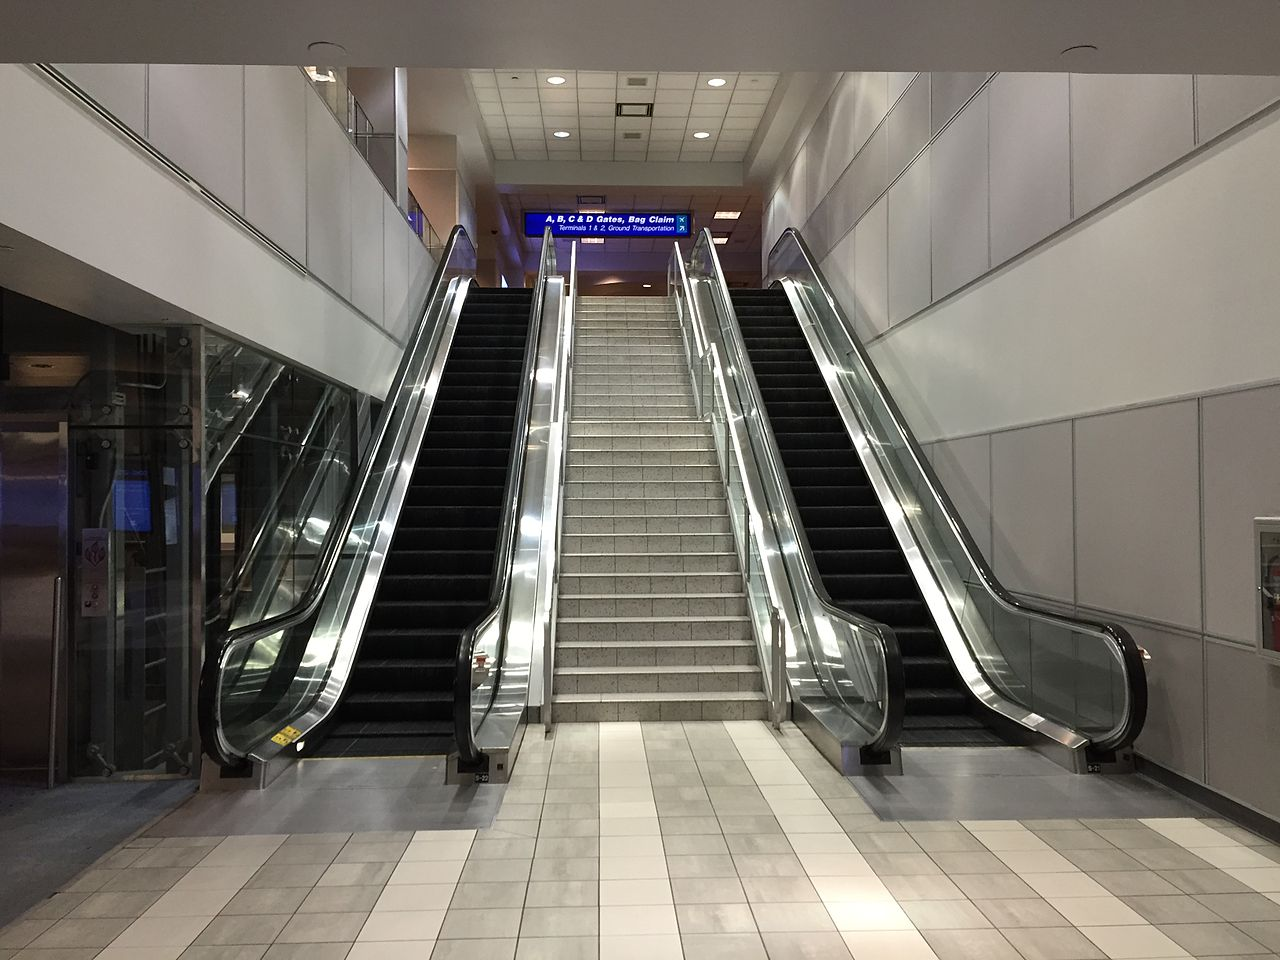 File 2015 04 14 00 17 35 Stairs And Escalator In The